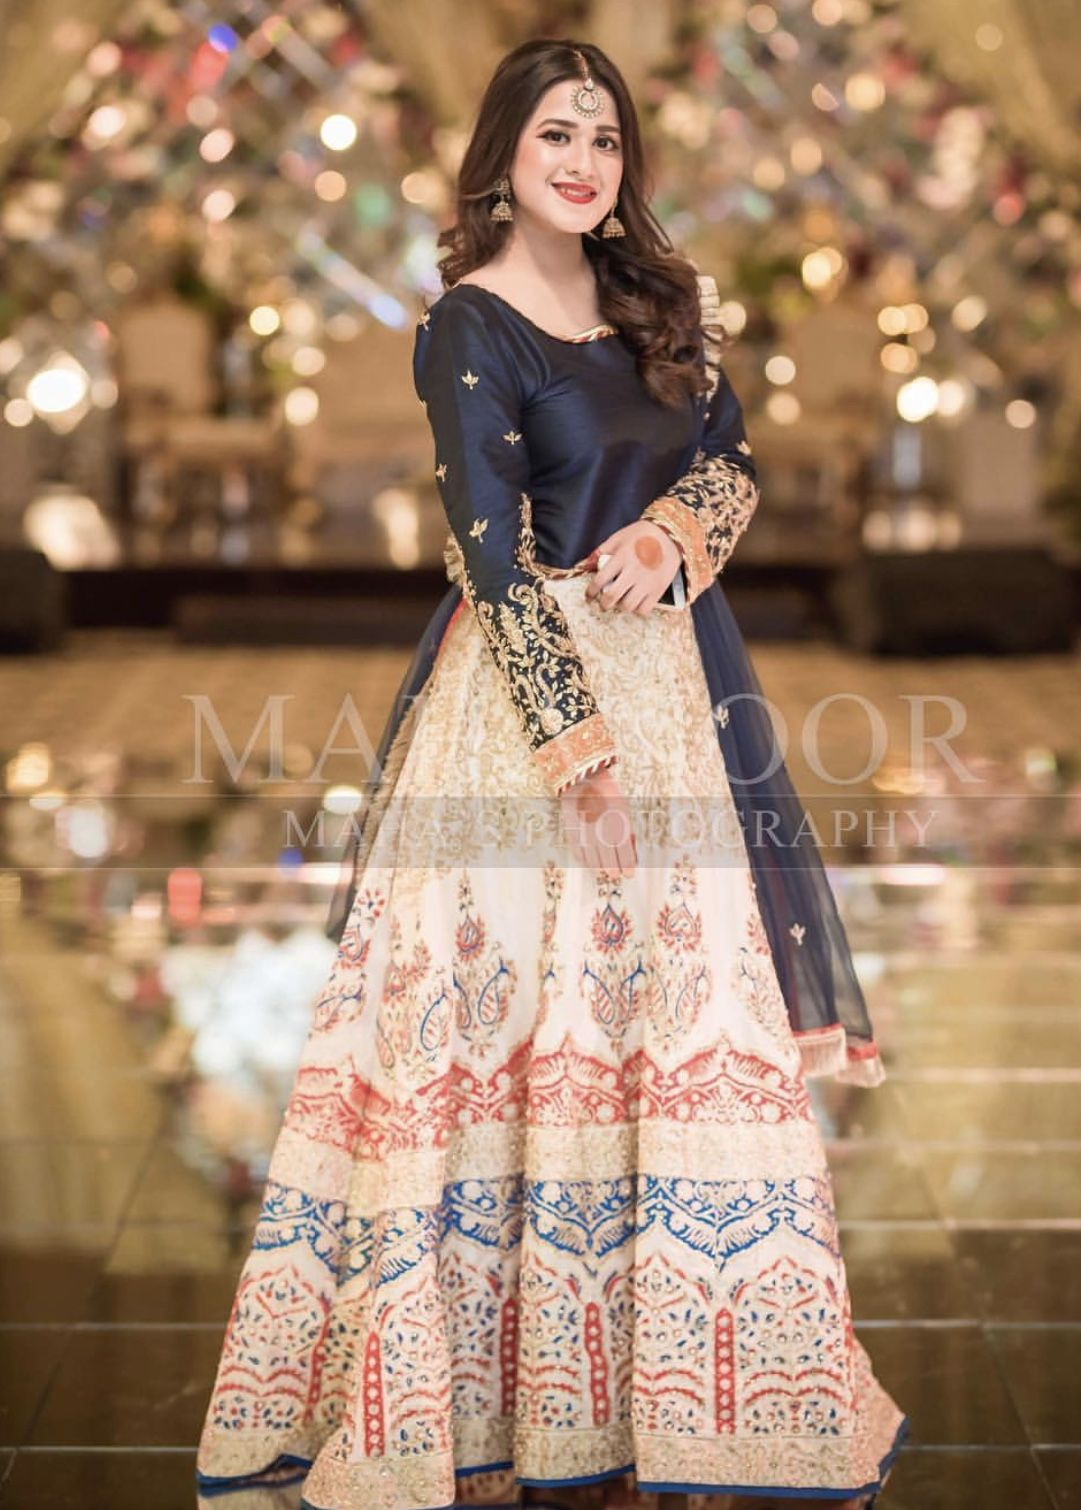 Brides Cousin Pakistani Party Wear Dresses Bridal Dress Design Wedding Dresses For Girls,Tea Length Wedding Dresses With Pockets